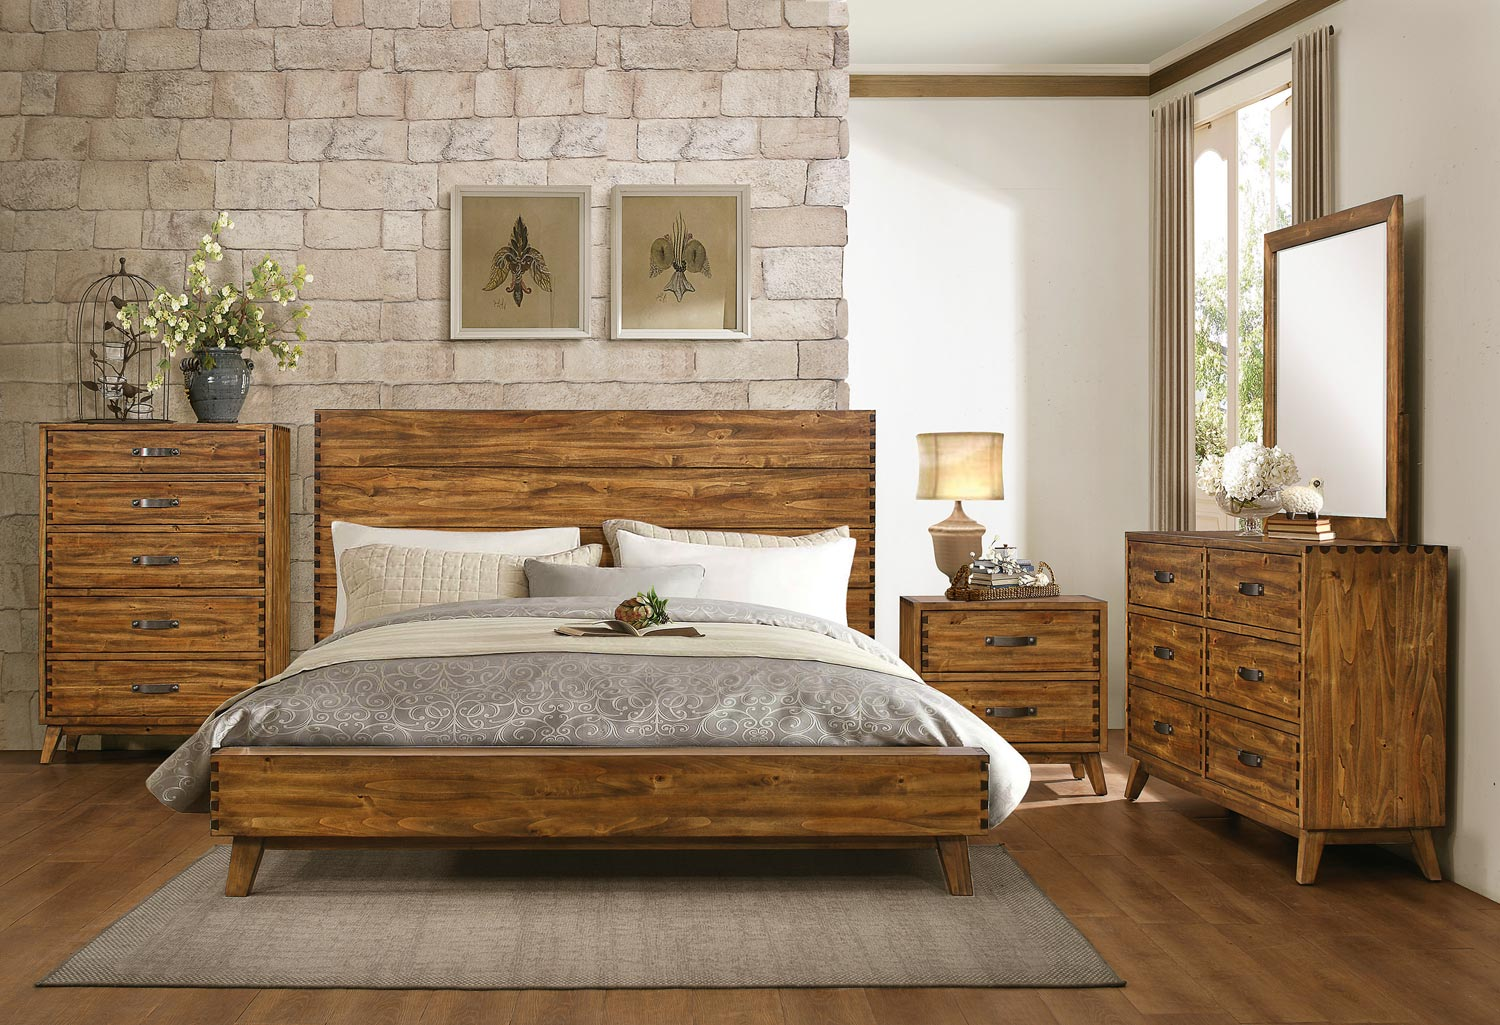 Homelegance Sorrel Panel Platform Bedroom Set - Rustic B1927-1 ...